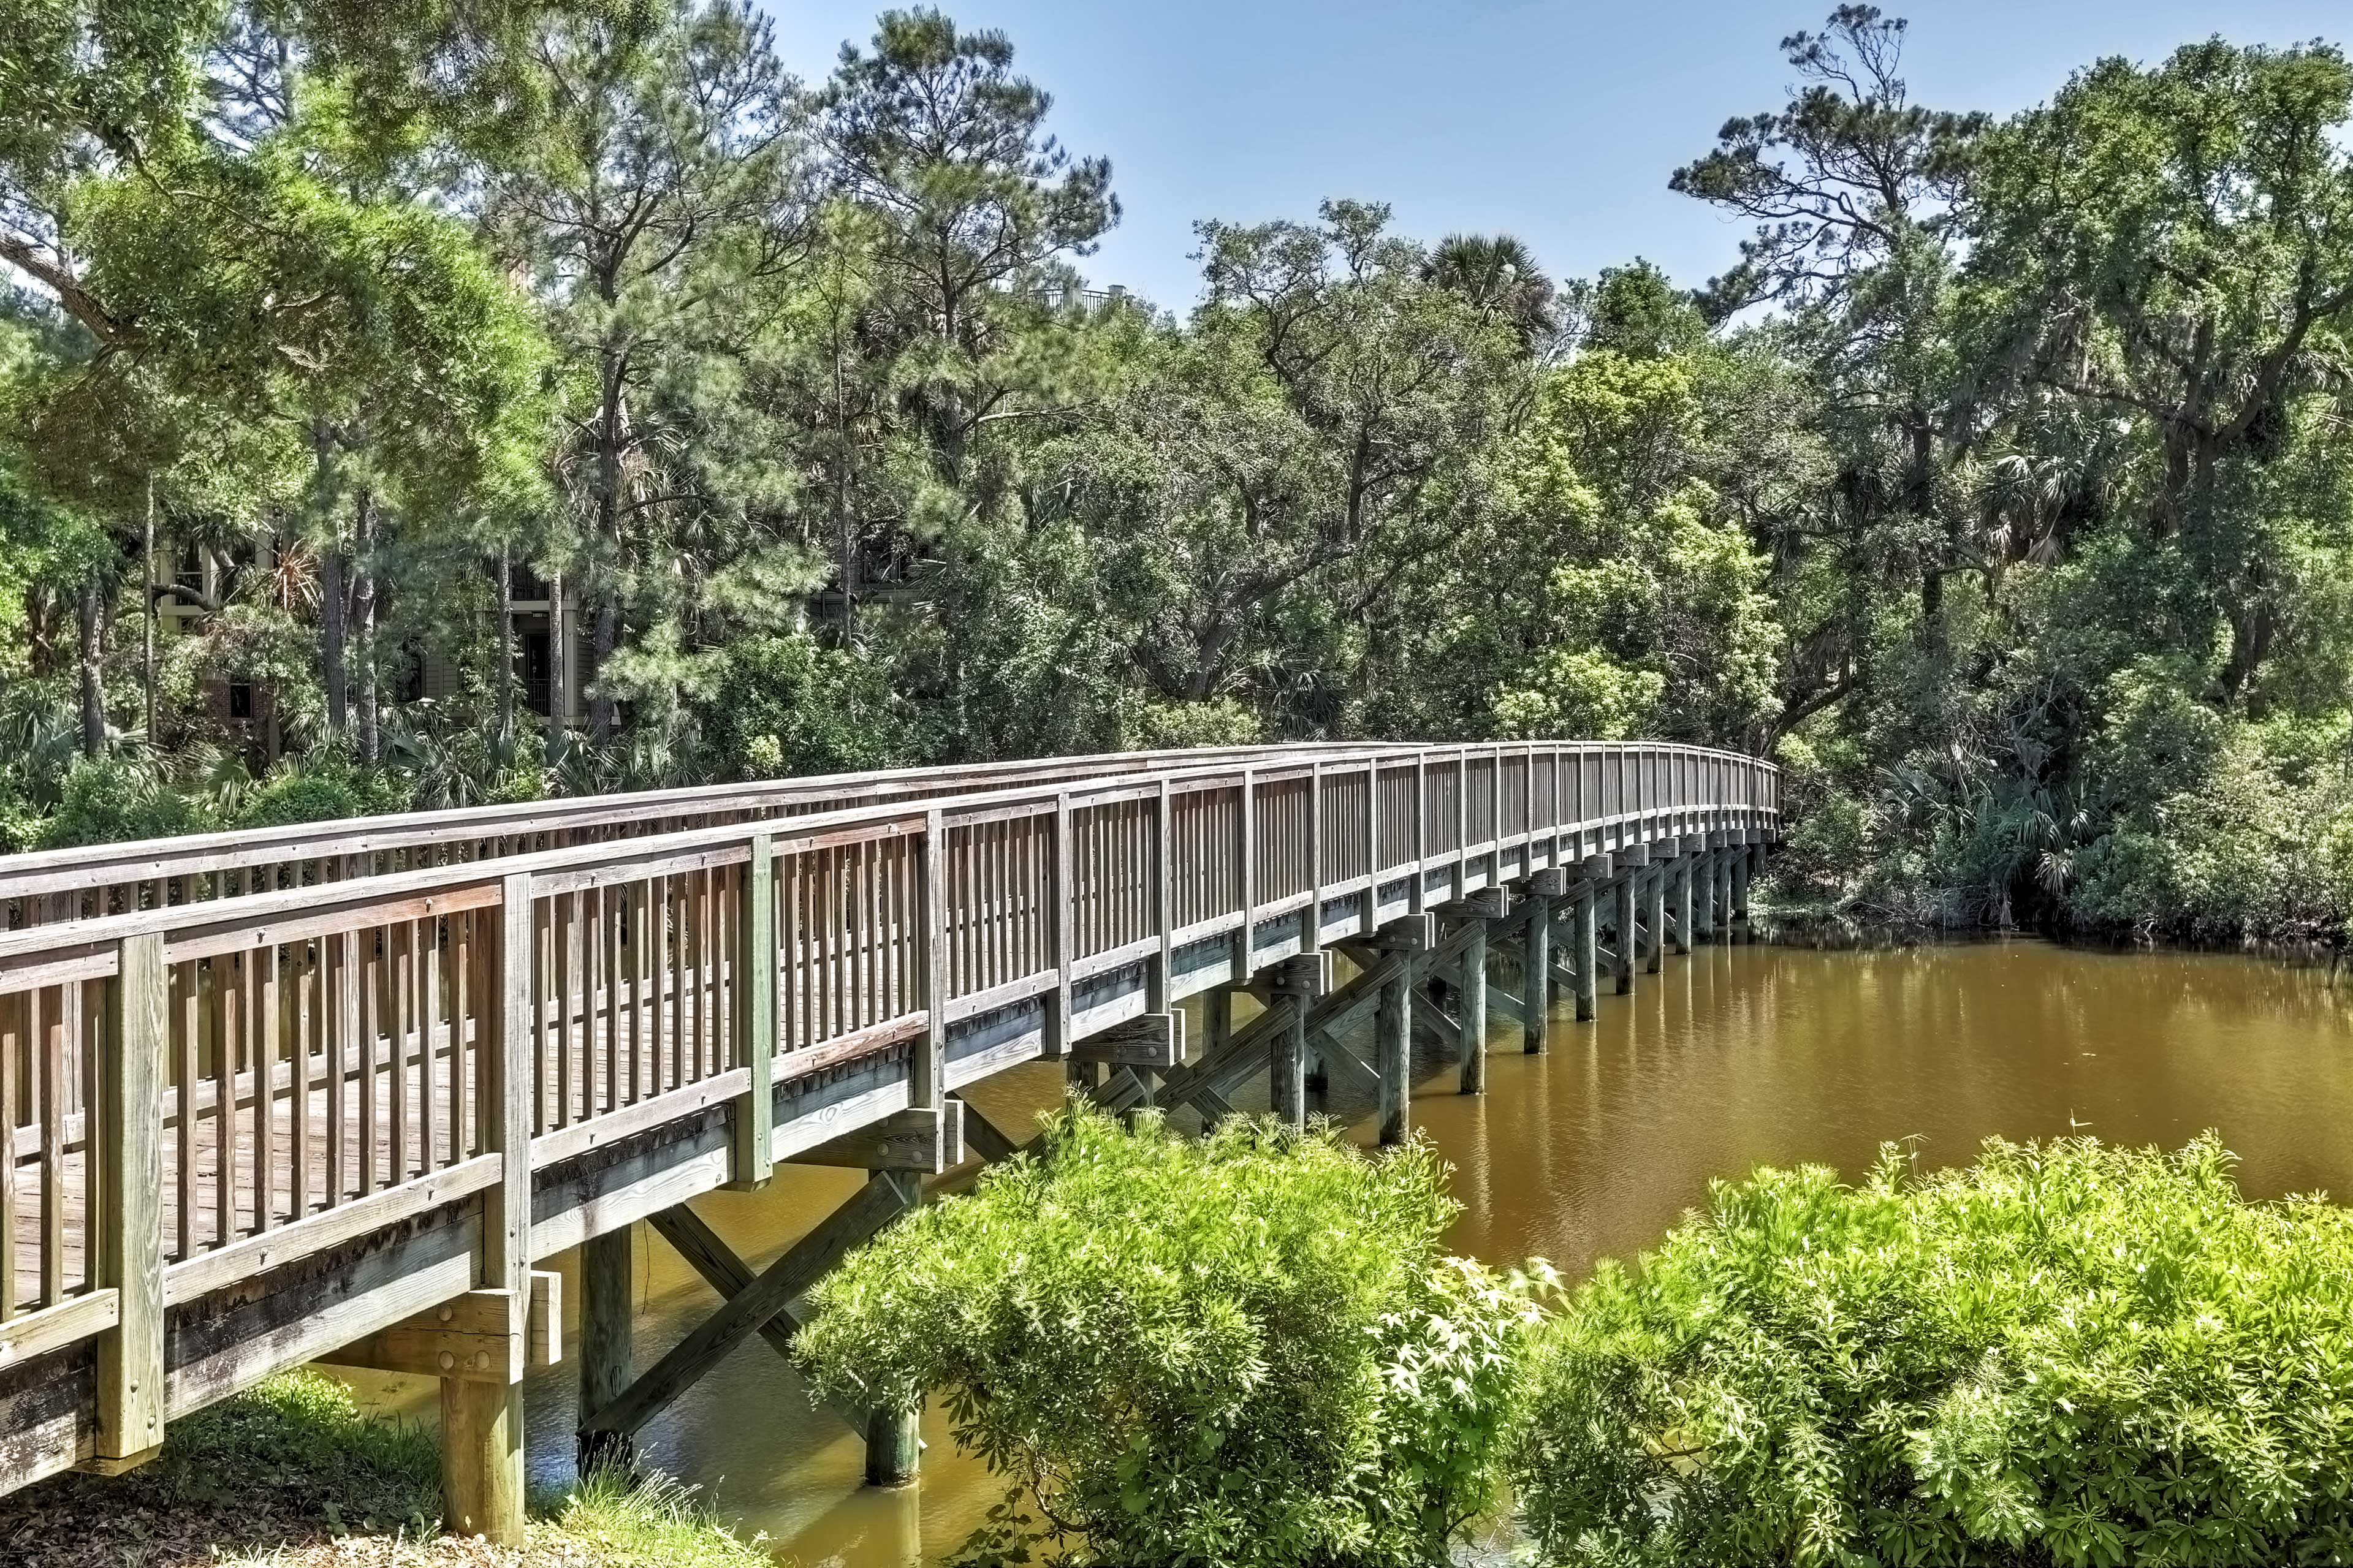 The trails that web the resort make for pleasant outdoor excursions.